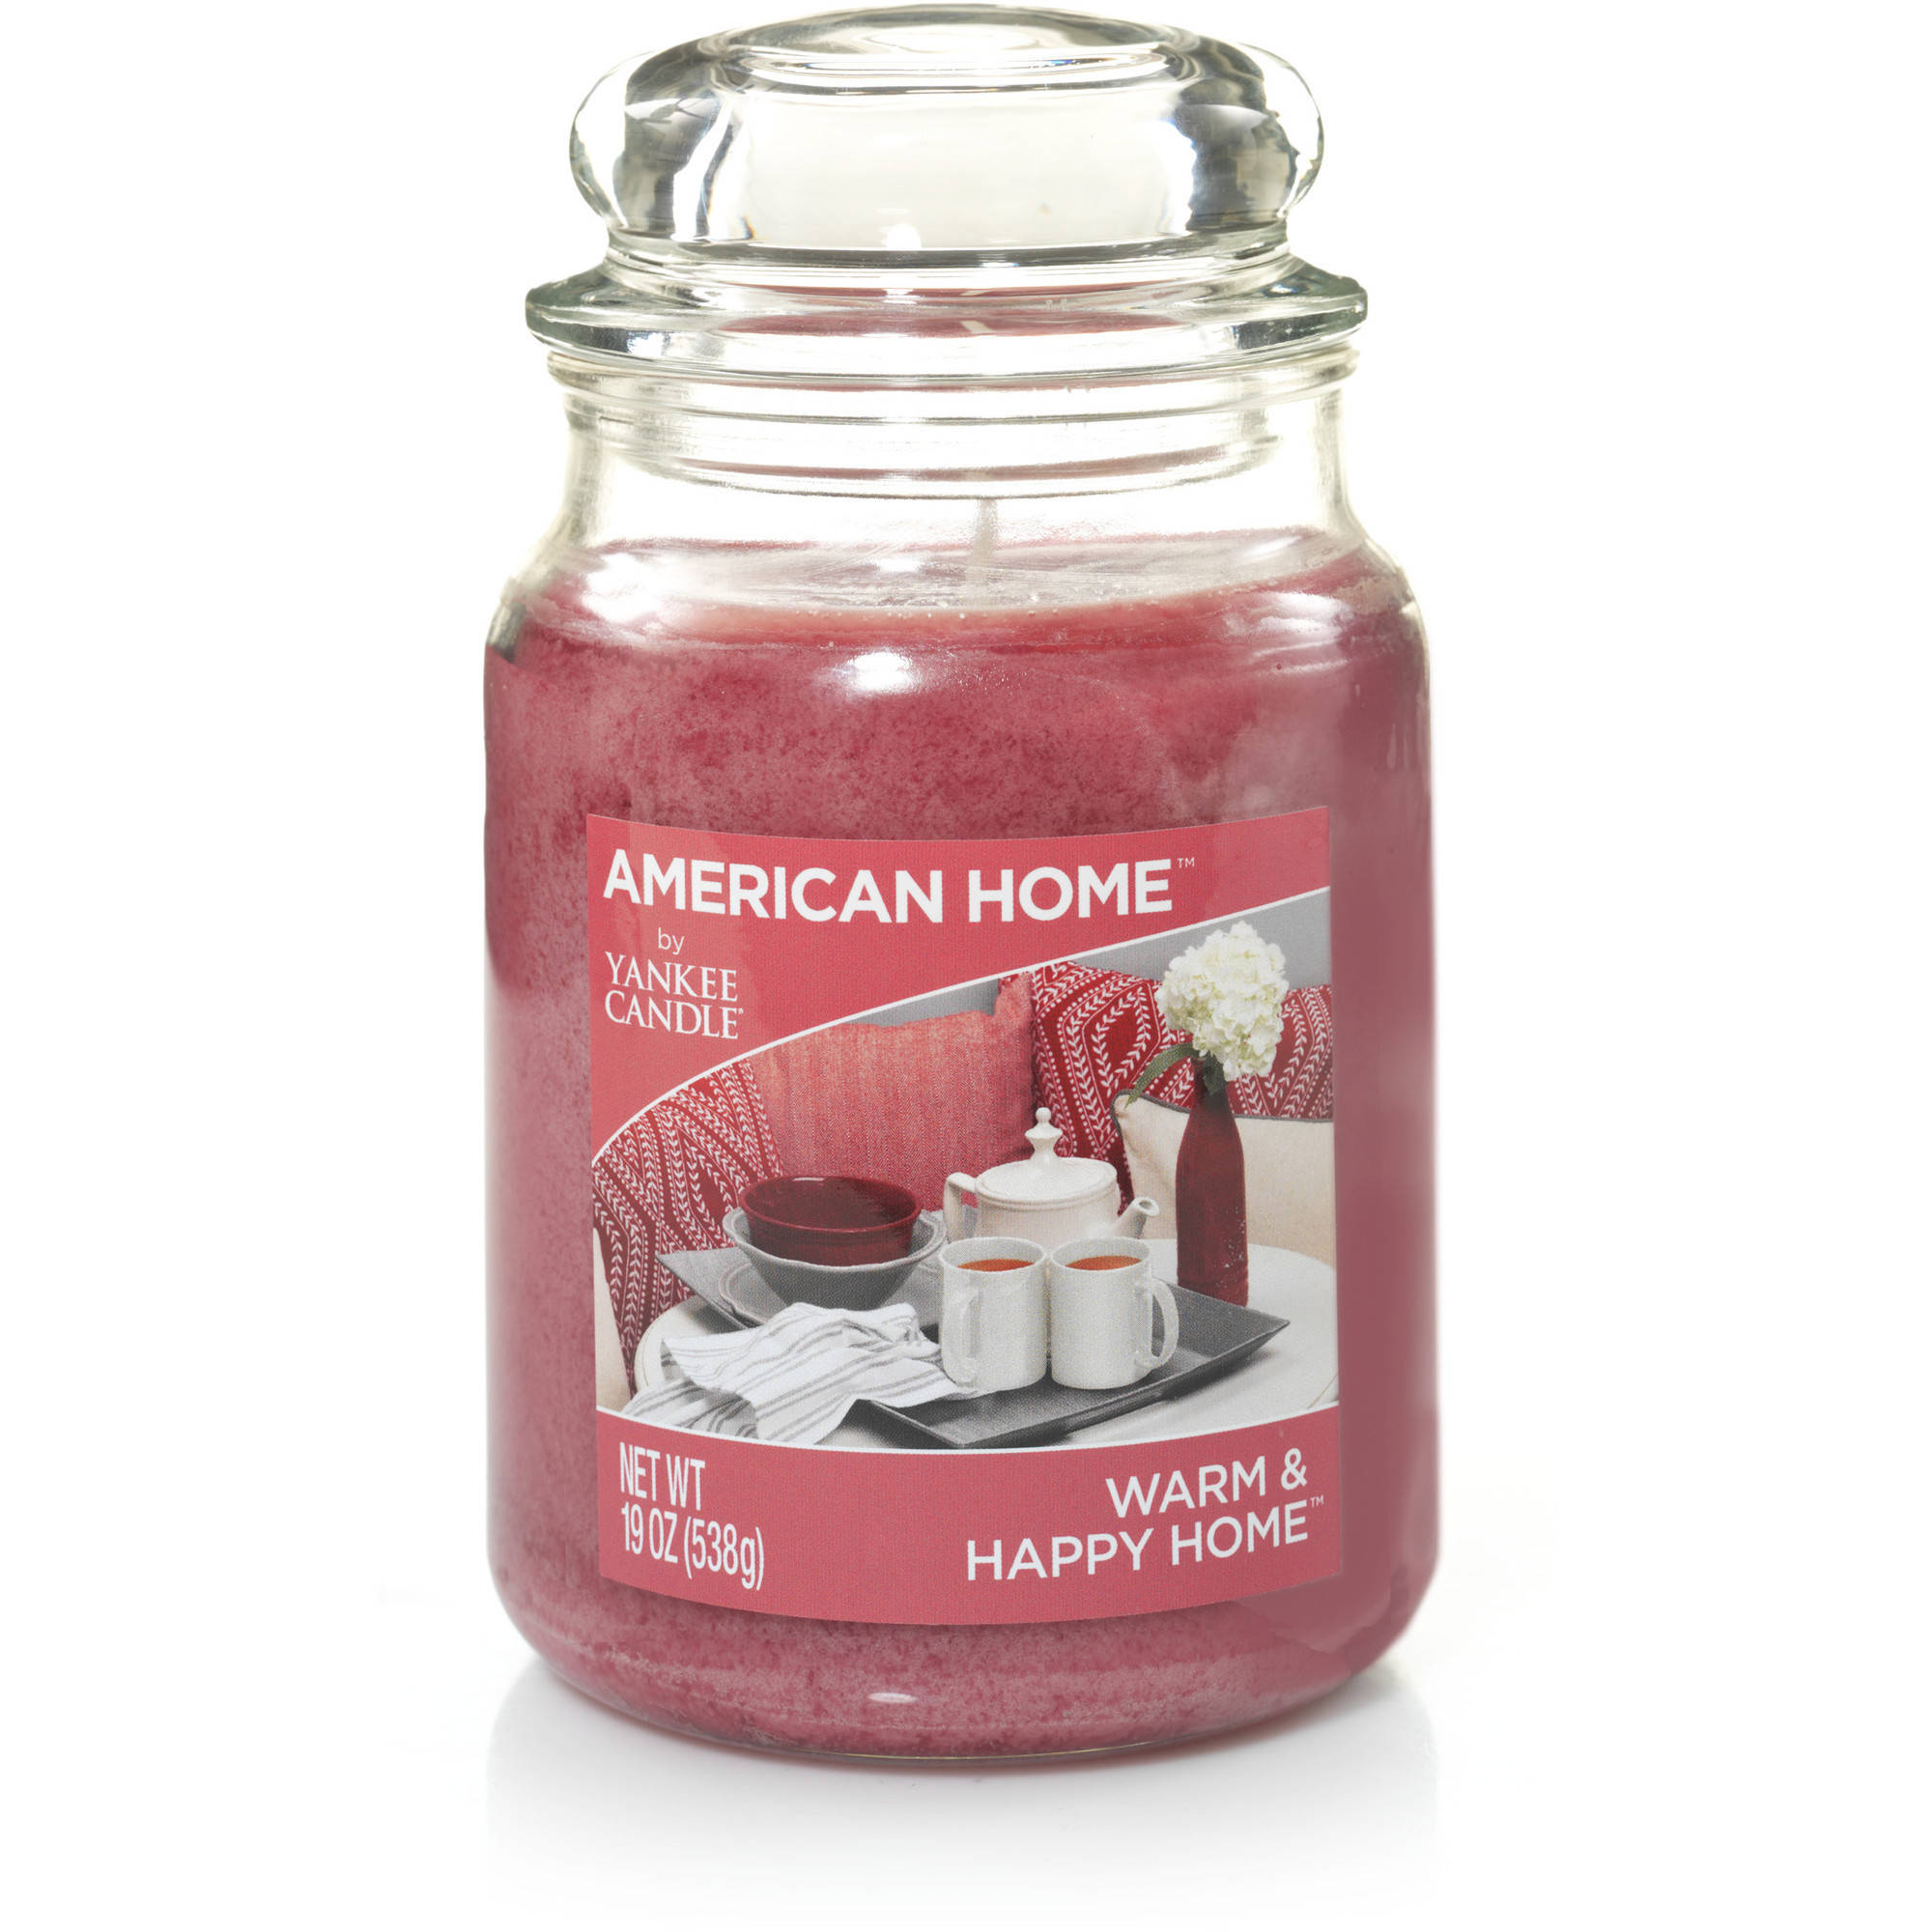 American Home by Yankee Candle Warm & Happy Home, 19 oz Large Jar